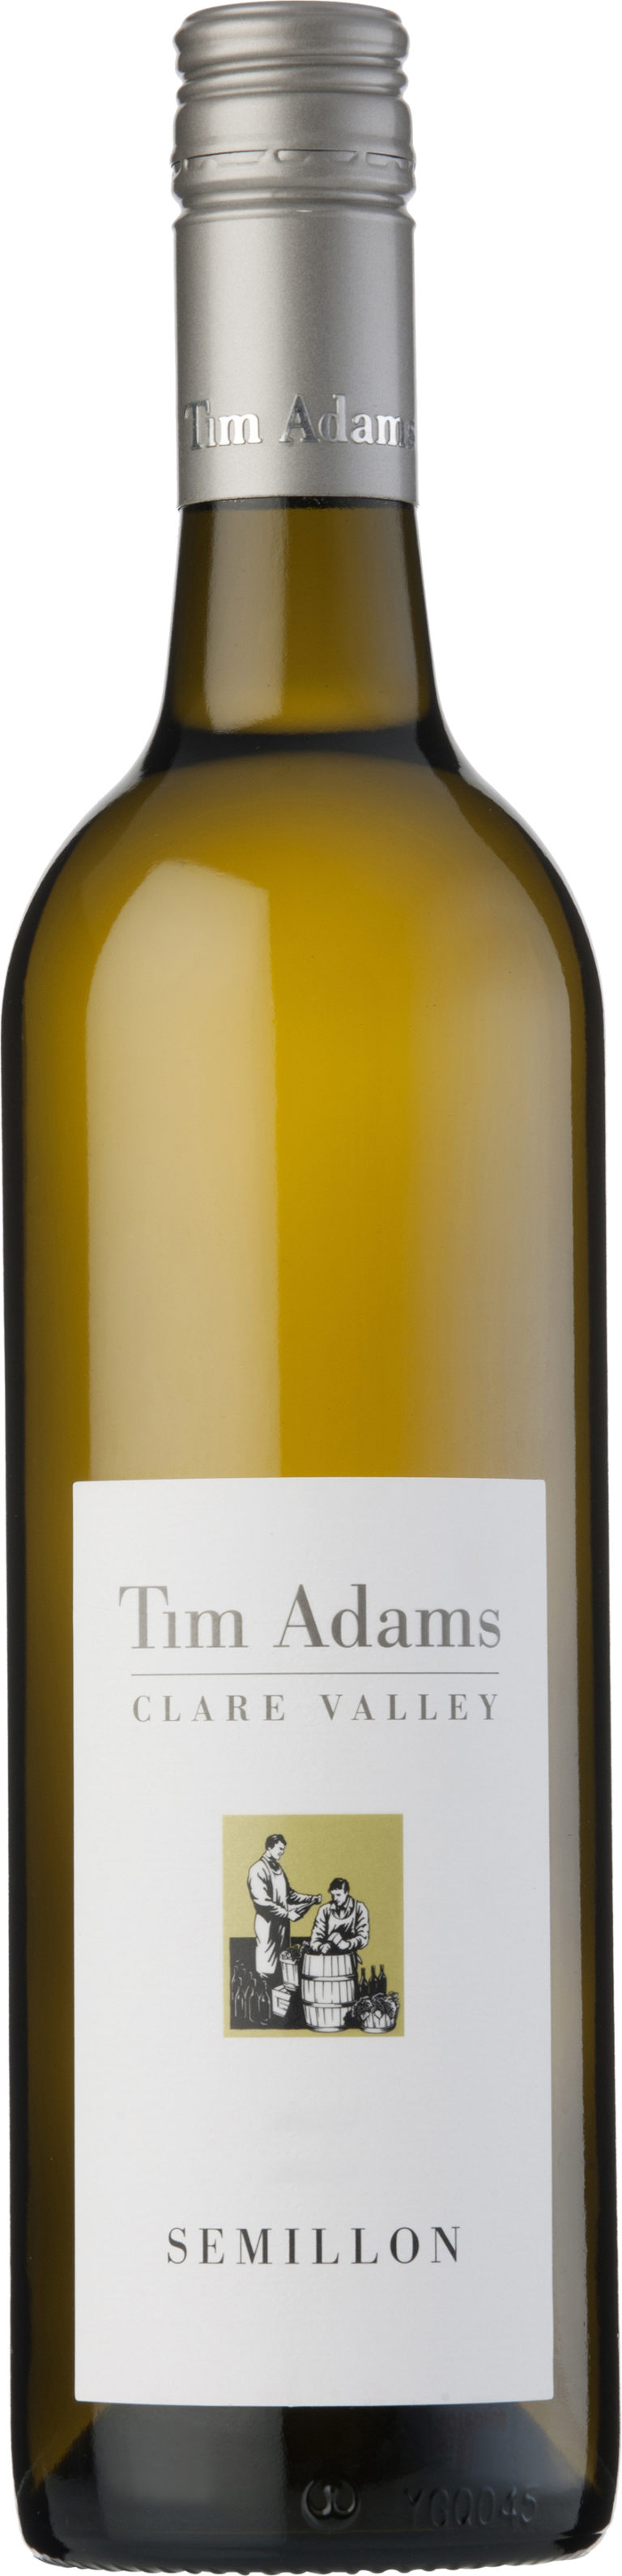 Tim Adams Semillon - vitt vin